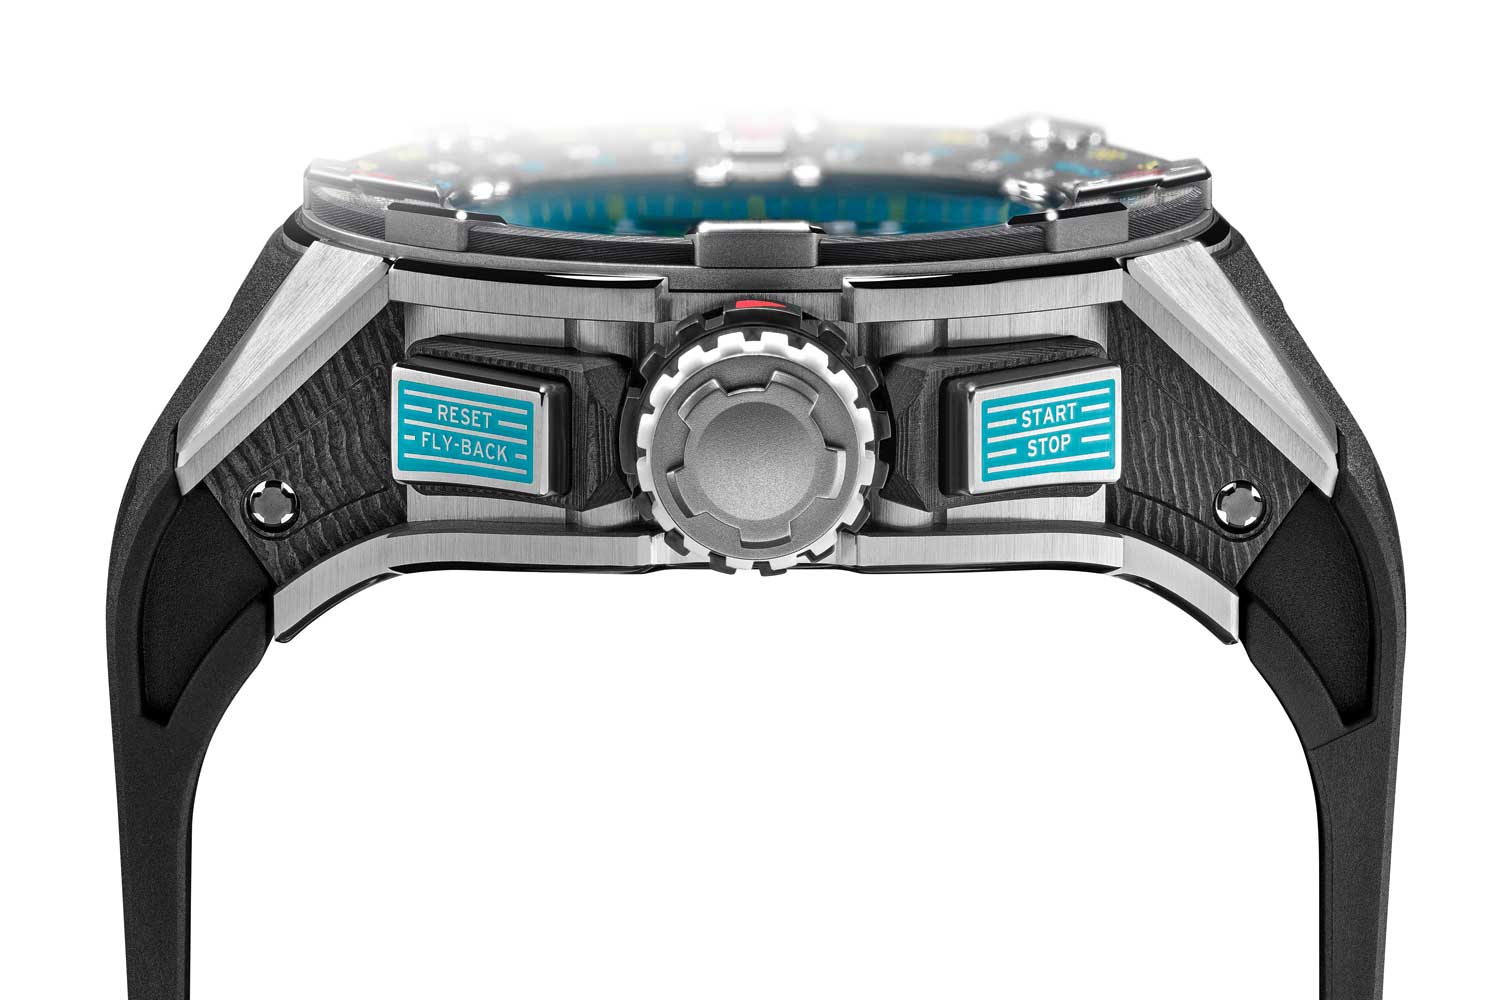 The watch has a 50mm titanium and carbon case